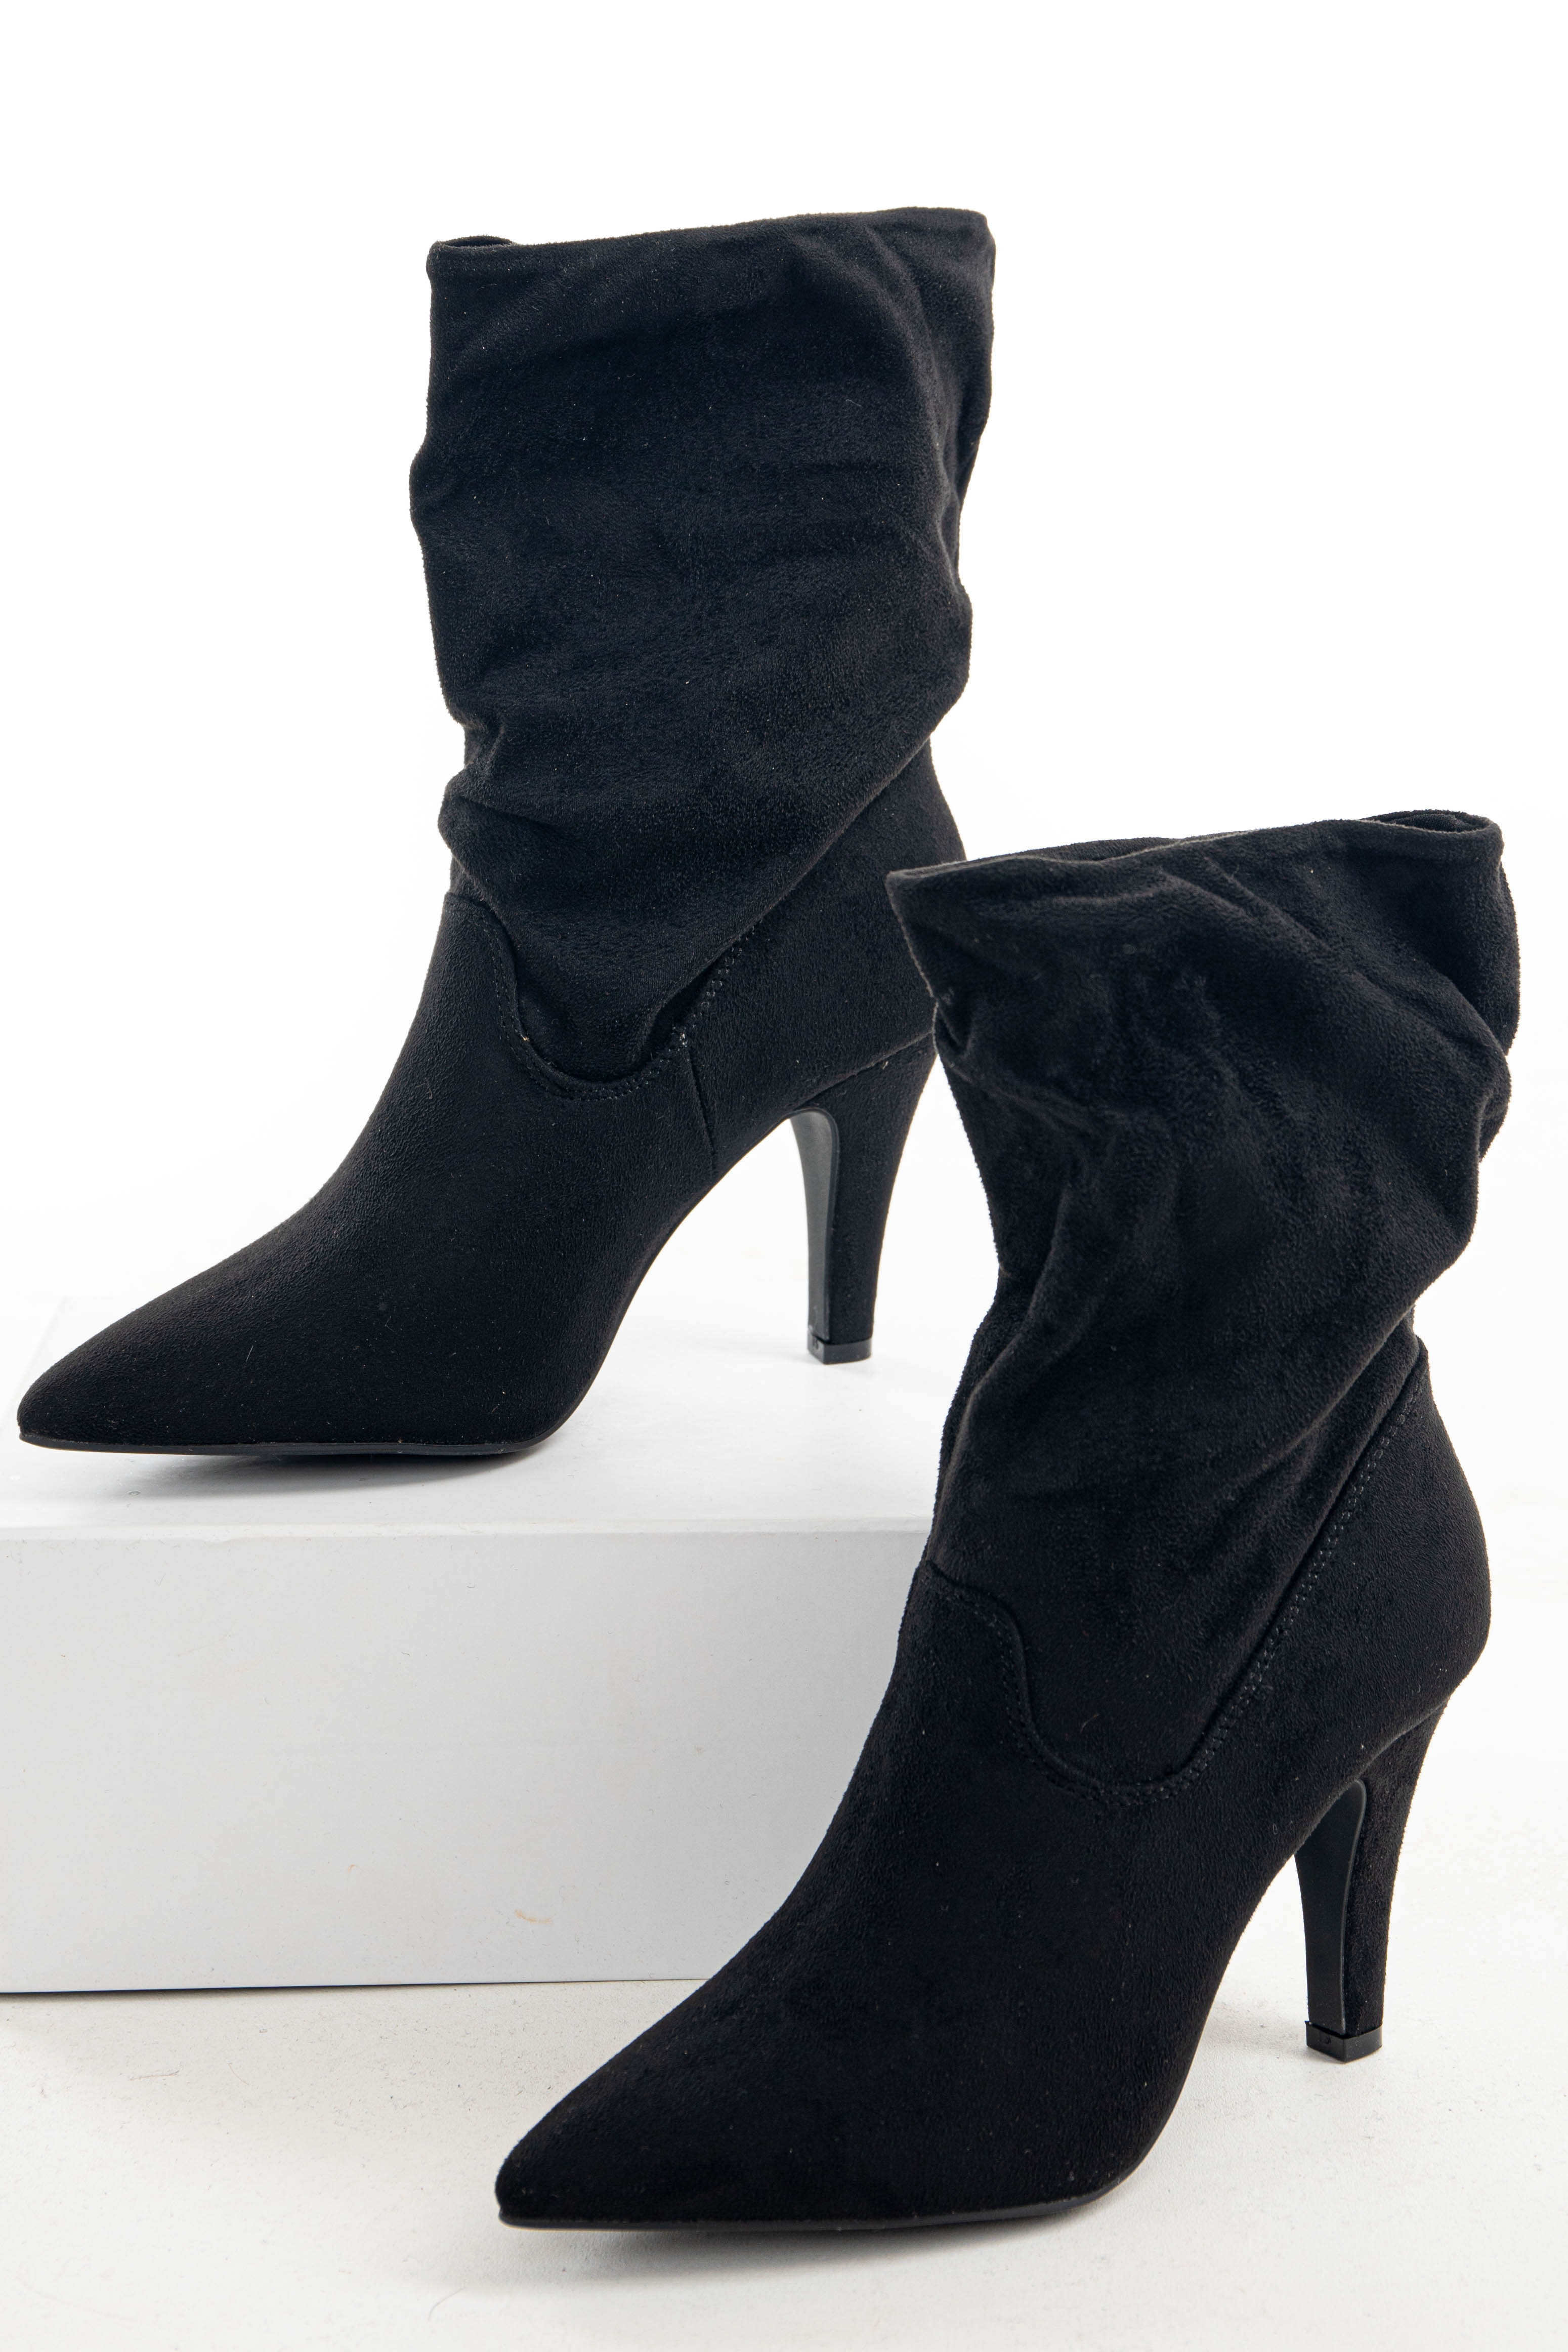 Black Suede Ankle High Slouchy Heeled Boots